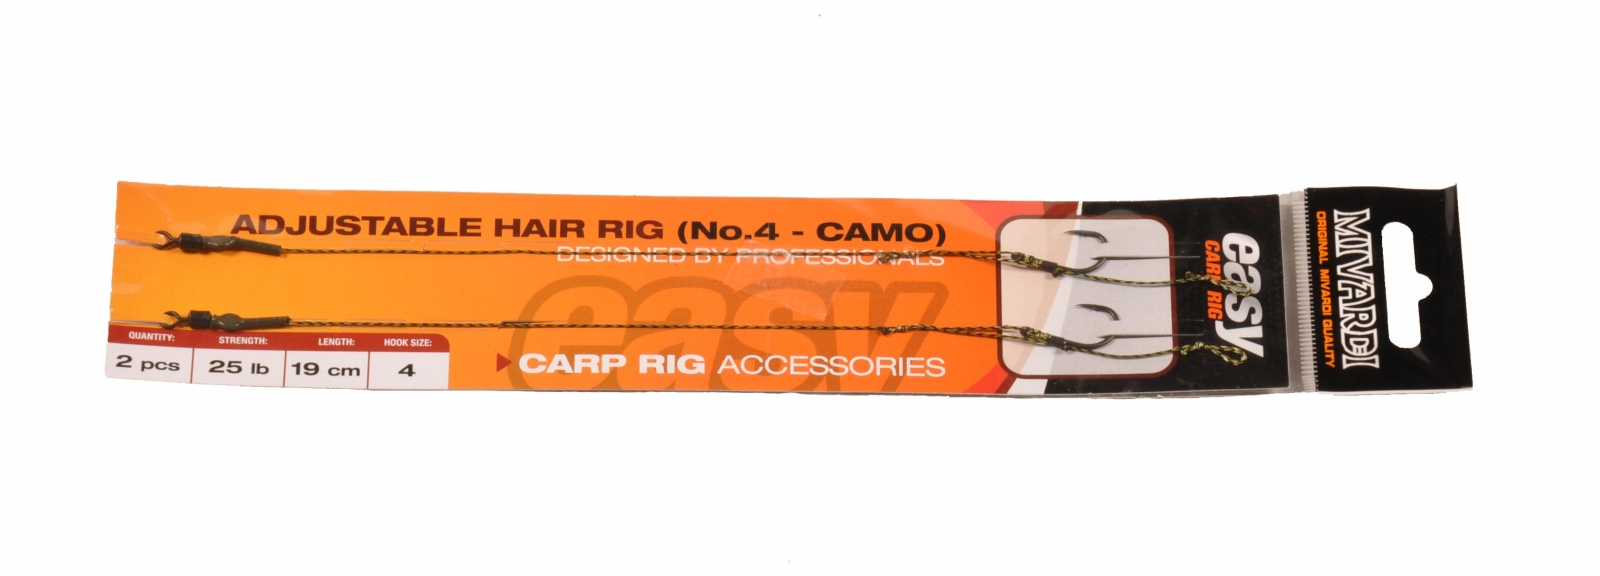 Adjustable hair rig Easy vel.2 camo